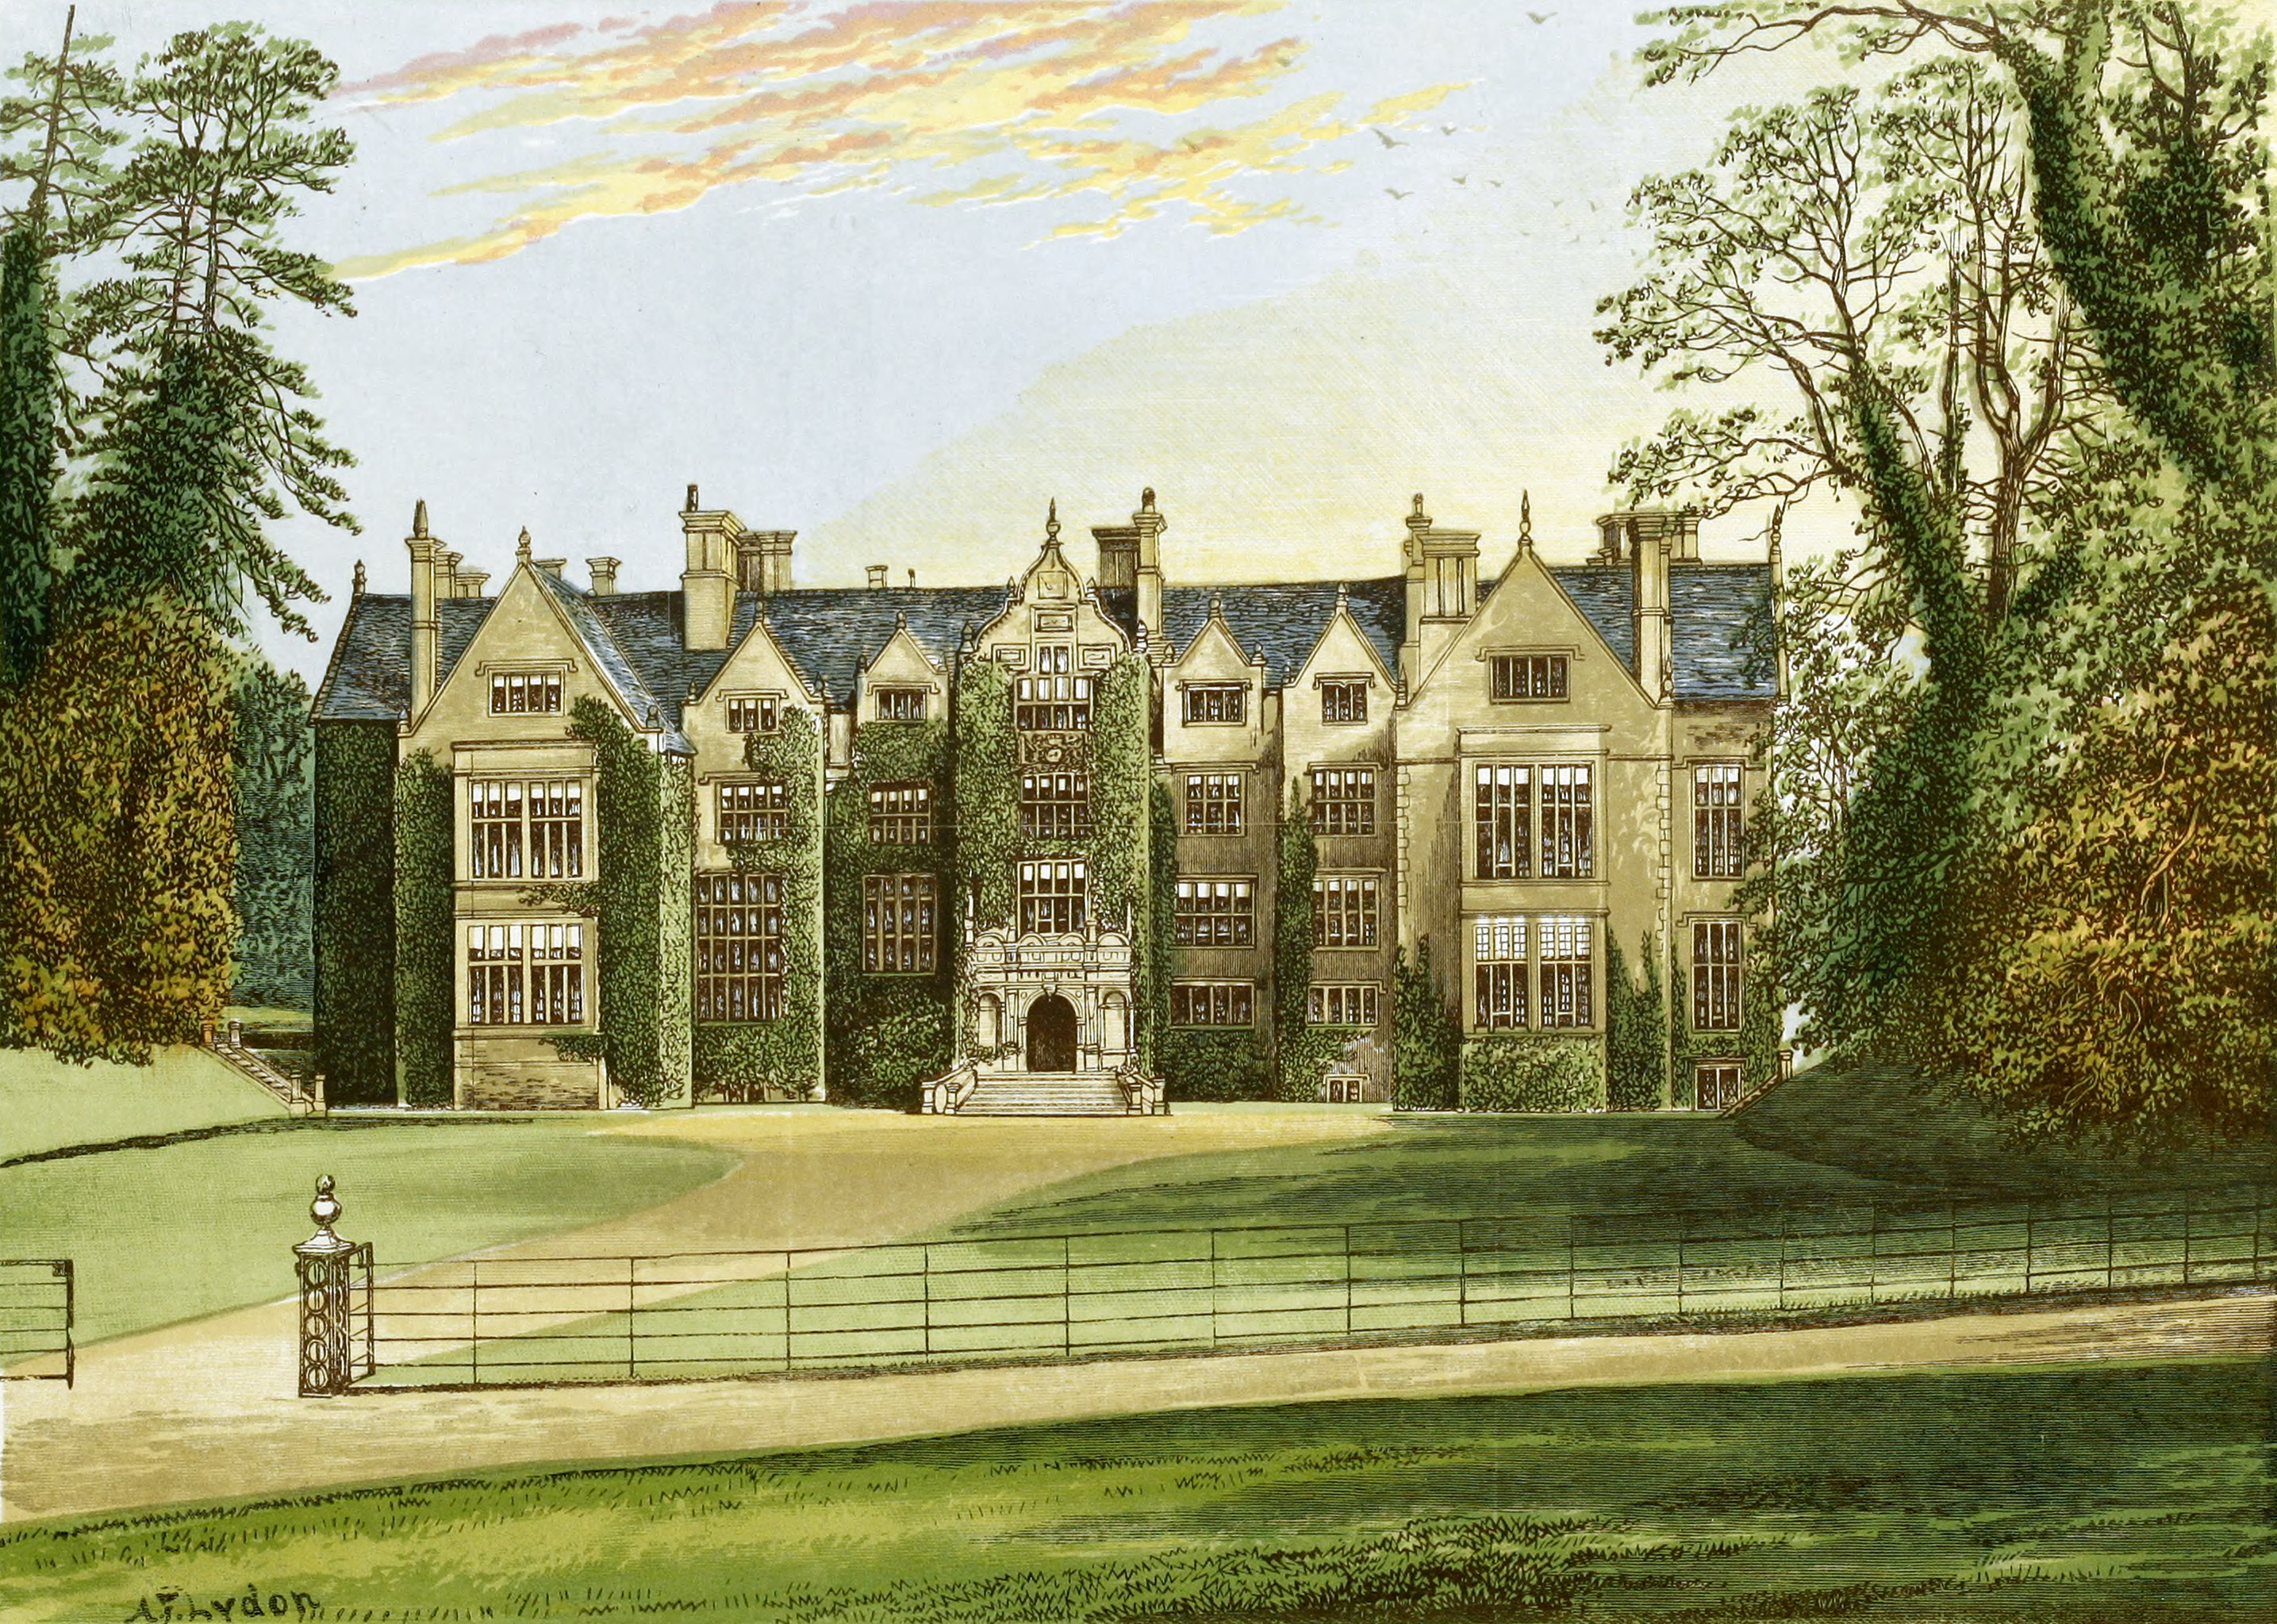 Wroxton Abbey